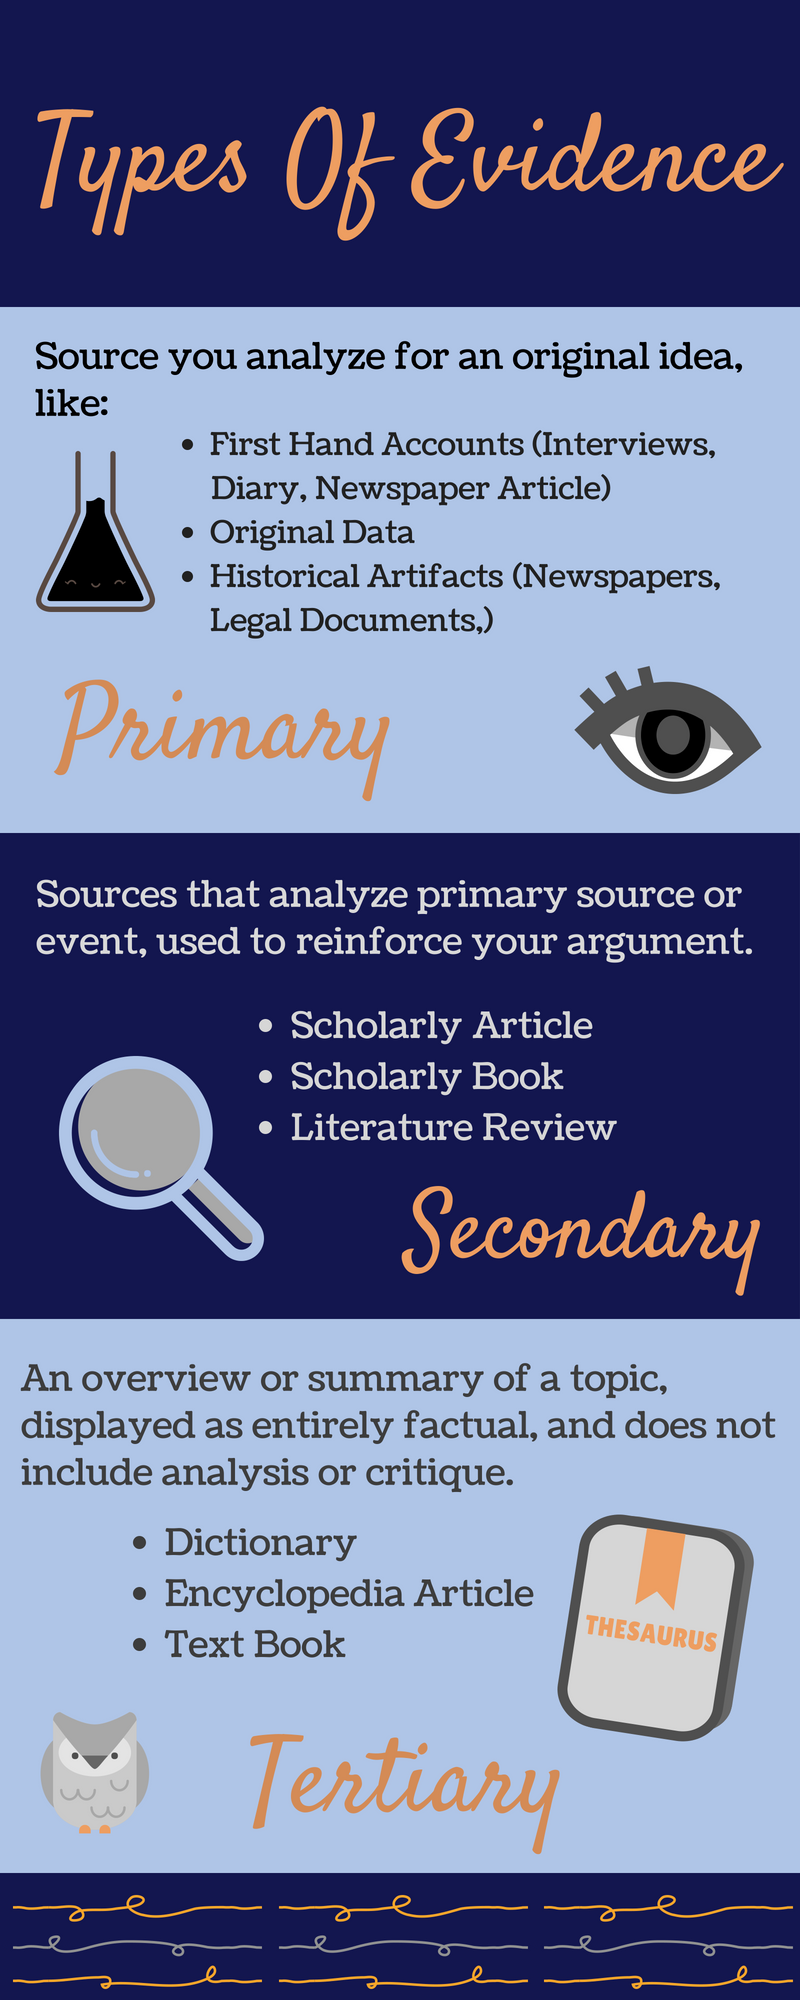 Types of Evidence: Primary (first-hand accoiunts, original research, historic artefacts), Secondary (scholarly articles, scholarly books, literature reviews), and Tertiary (dictyionaroes, encyclopedias, textbooks)